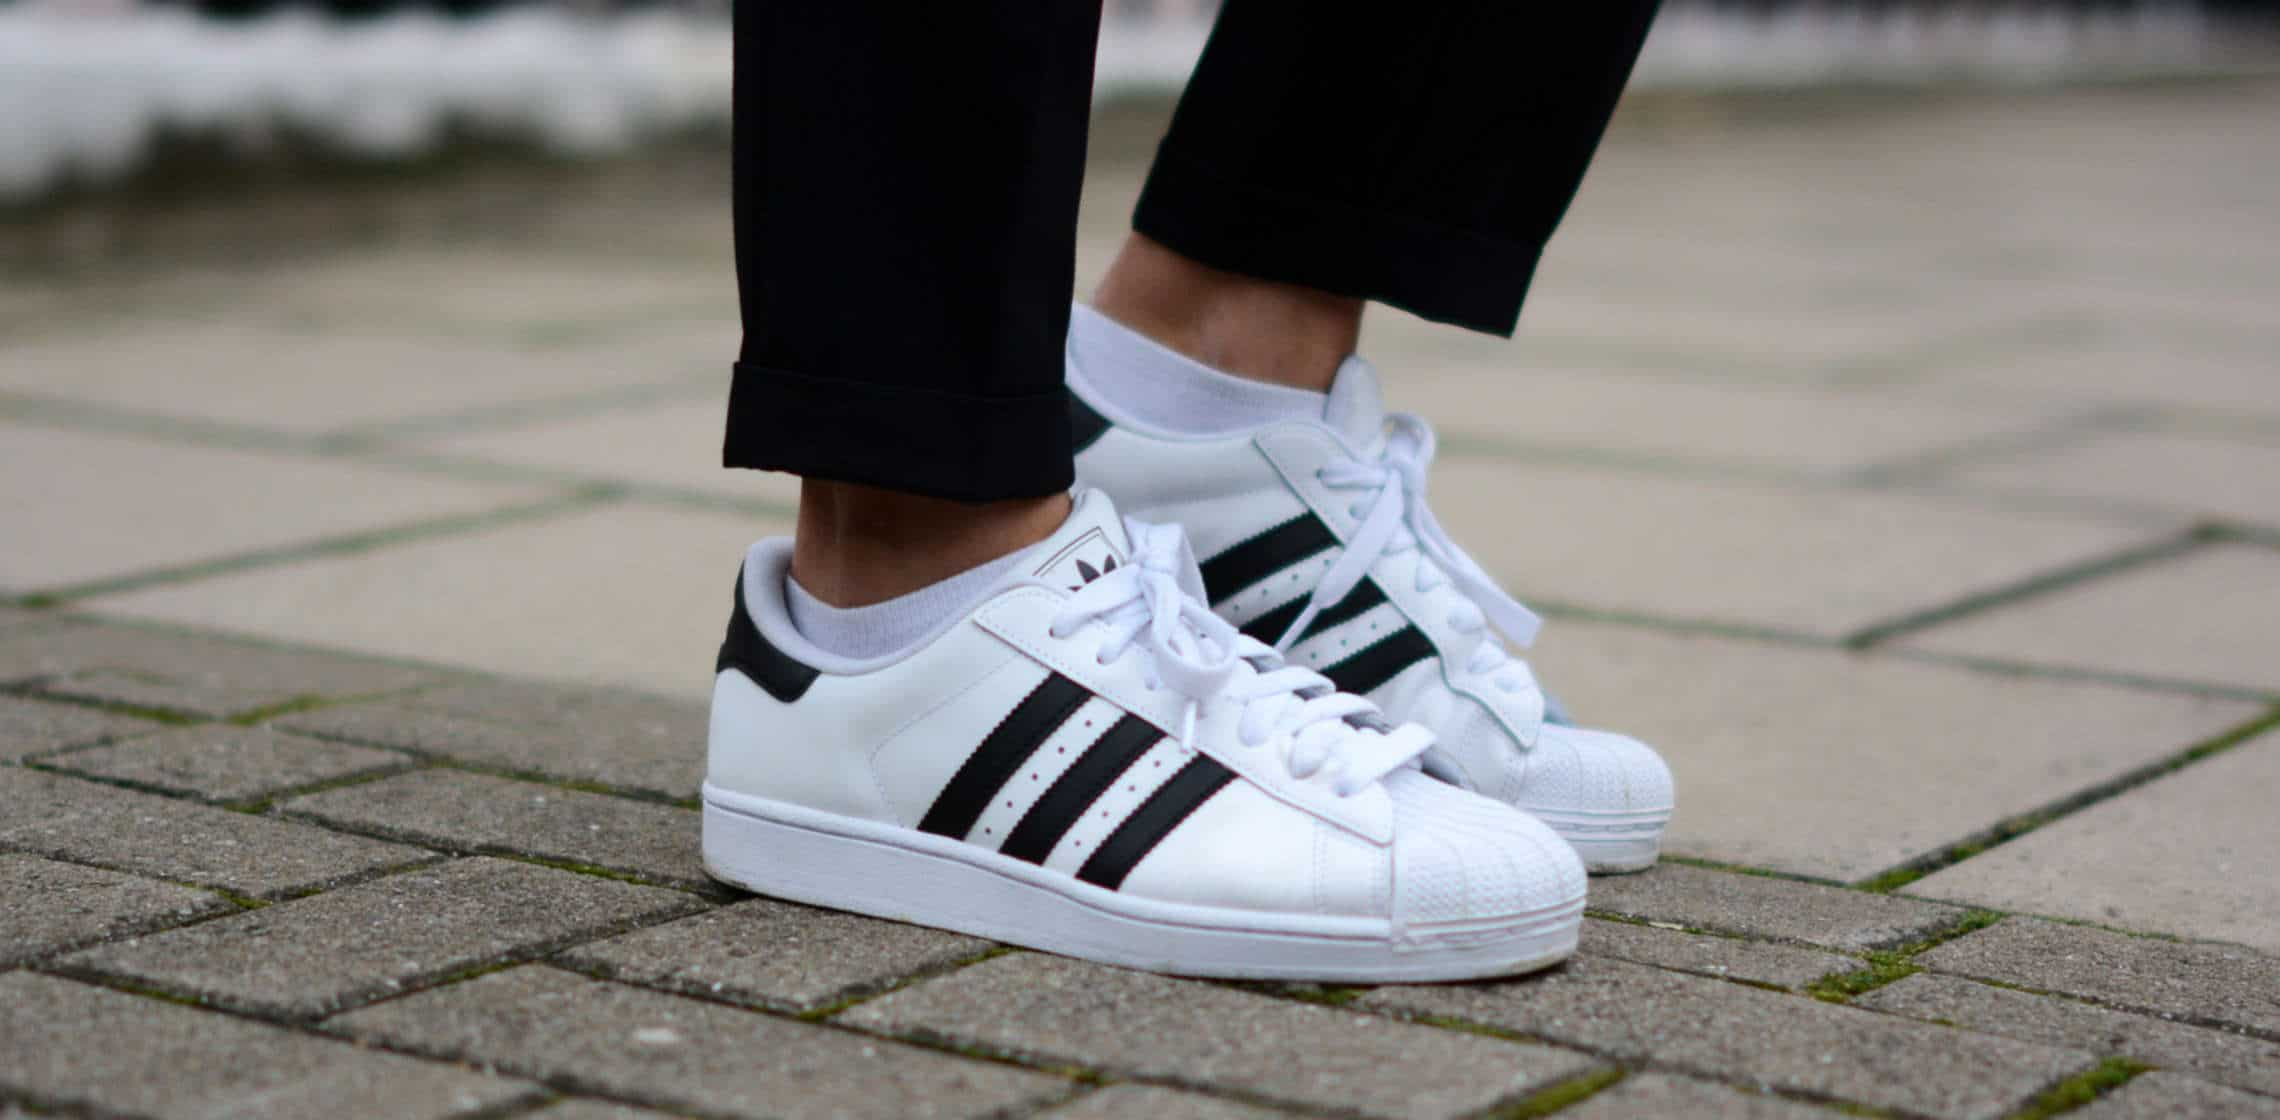 OriginalesEn Superstar OjoZapatillas OriginalesEn Superstar Baratasy Superstar Adidas OjoZapatillas Baratasy Baratasy Adidas OjoZapatillas Adidas rCoBWdex